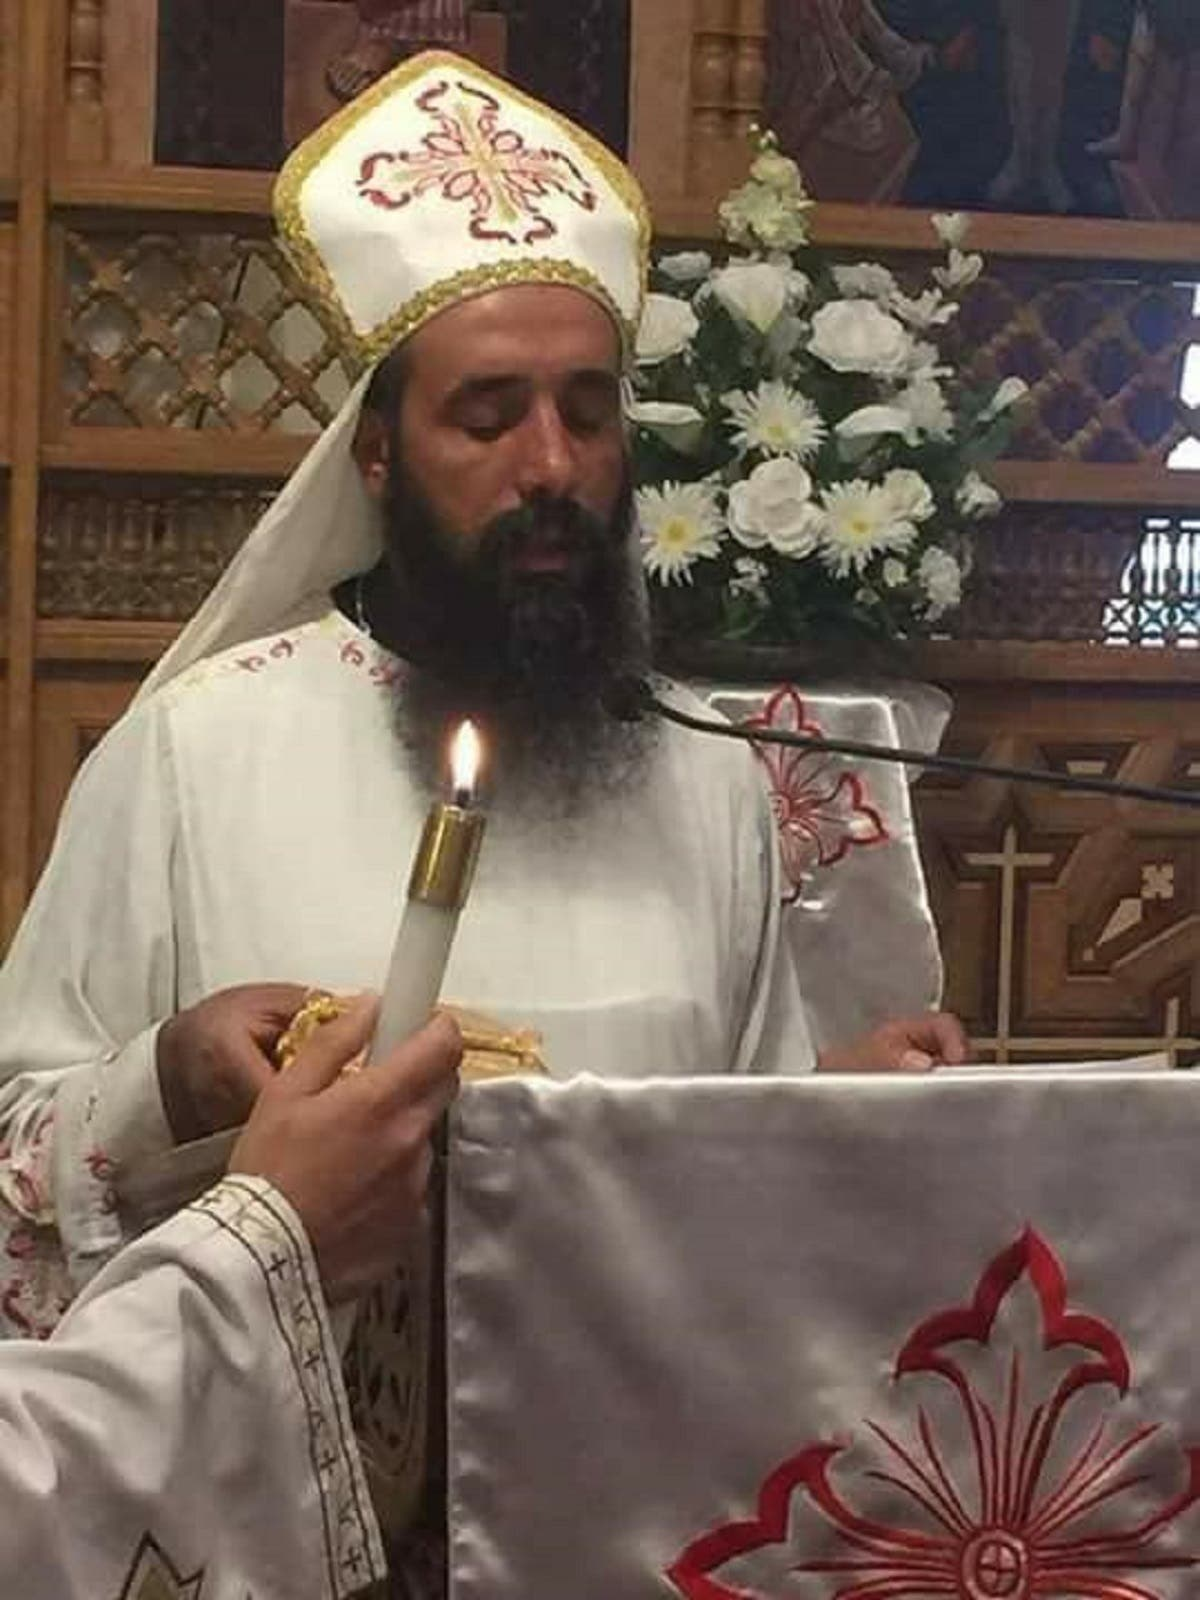 Samaan Shehta was a Coptic priest of a church in Egypt's governorate of Beni Suef. (Supplied)